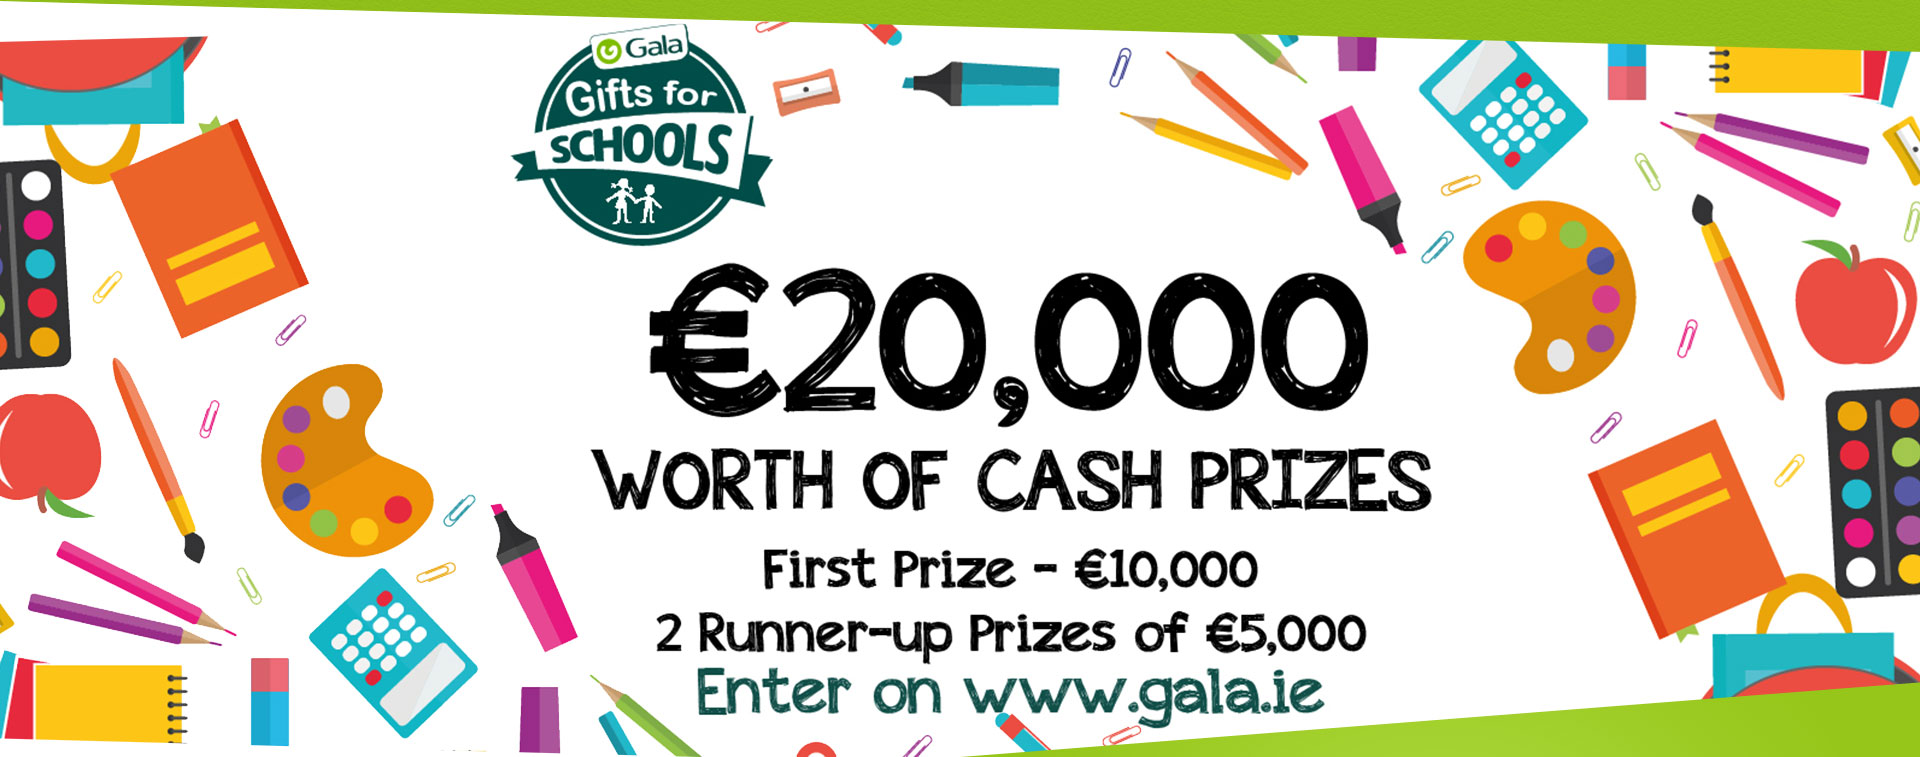 Enter Gala's Gifts for Schools Competition